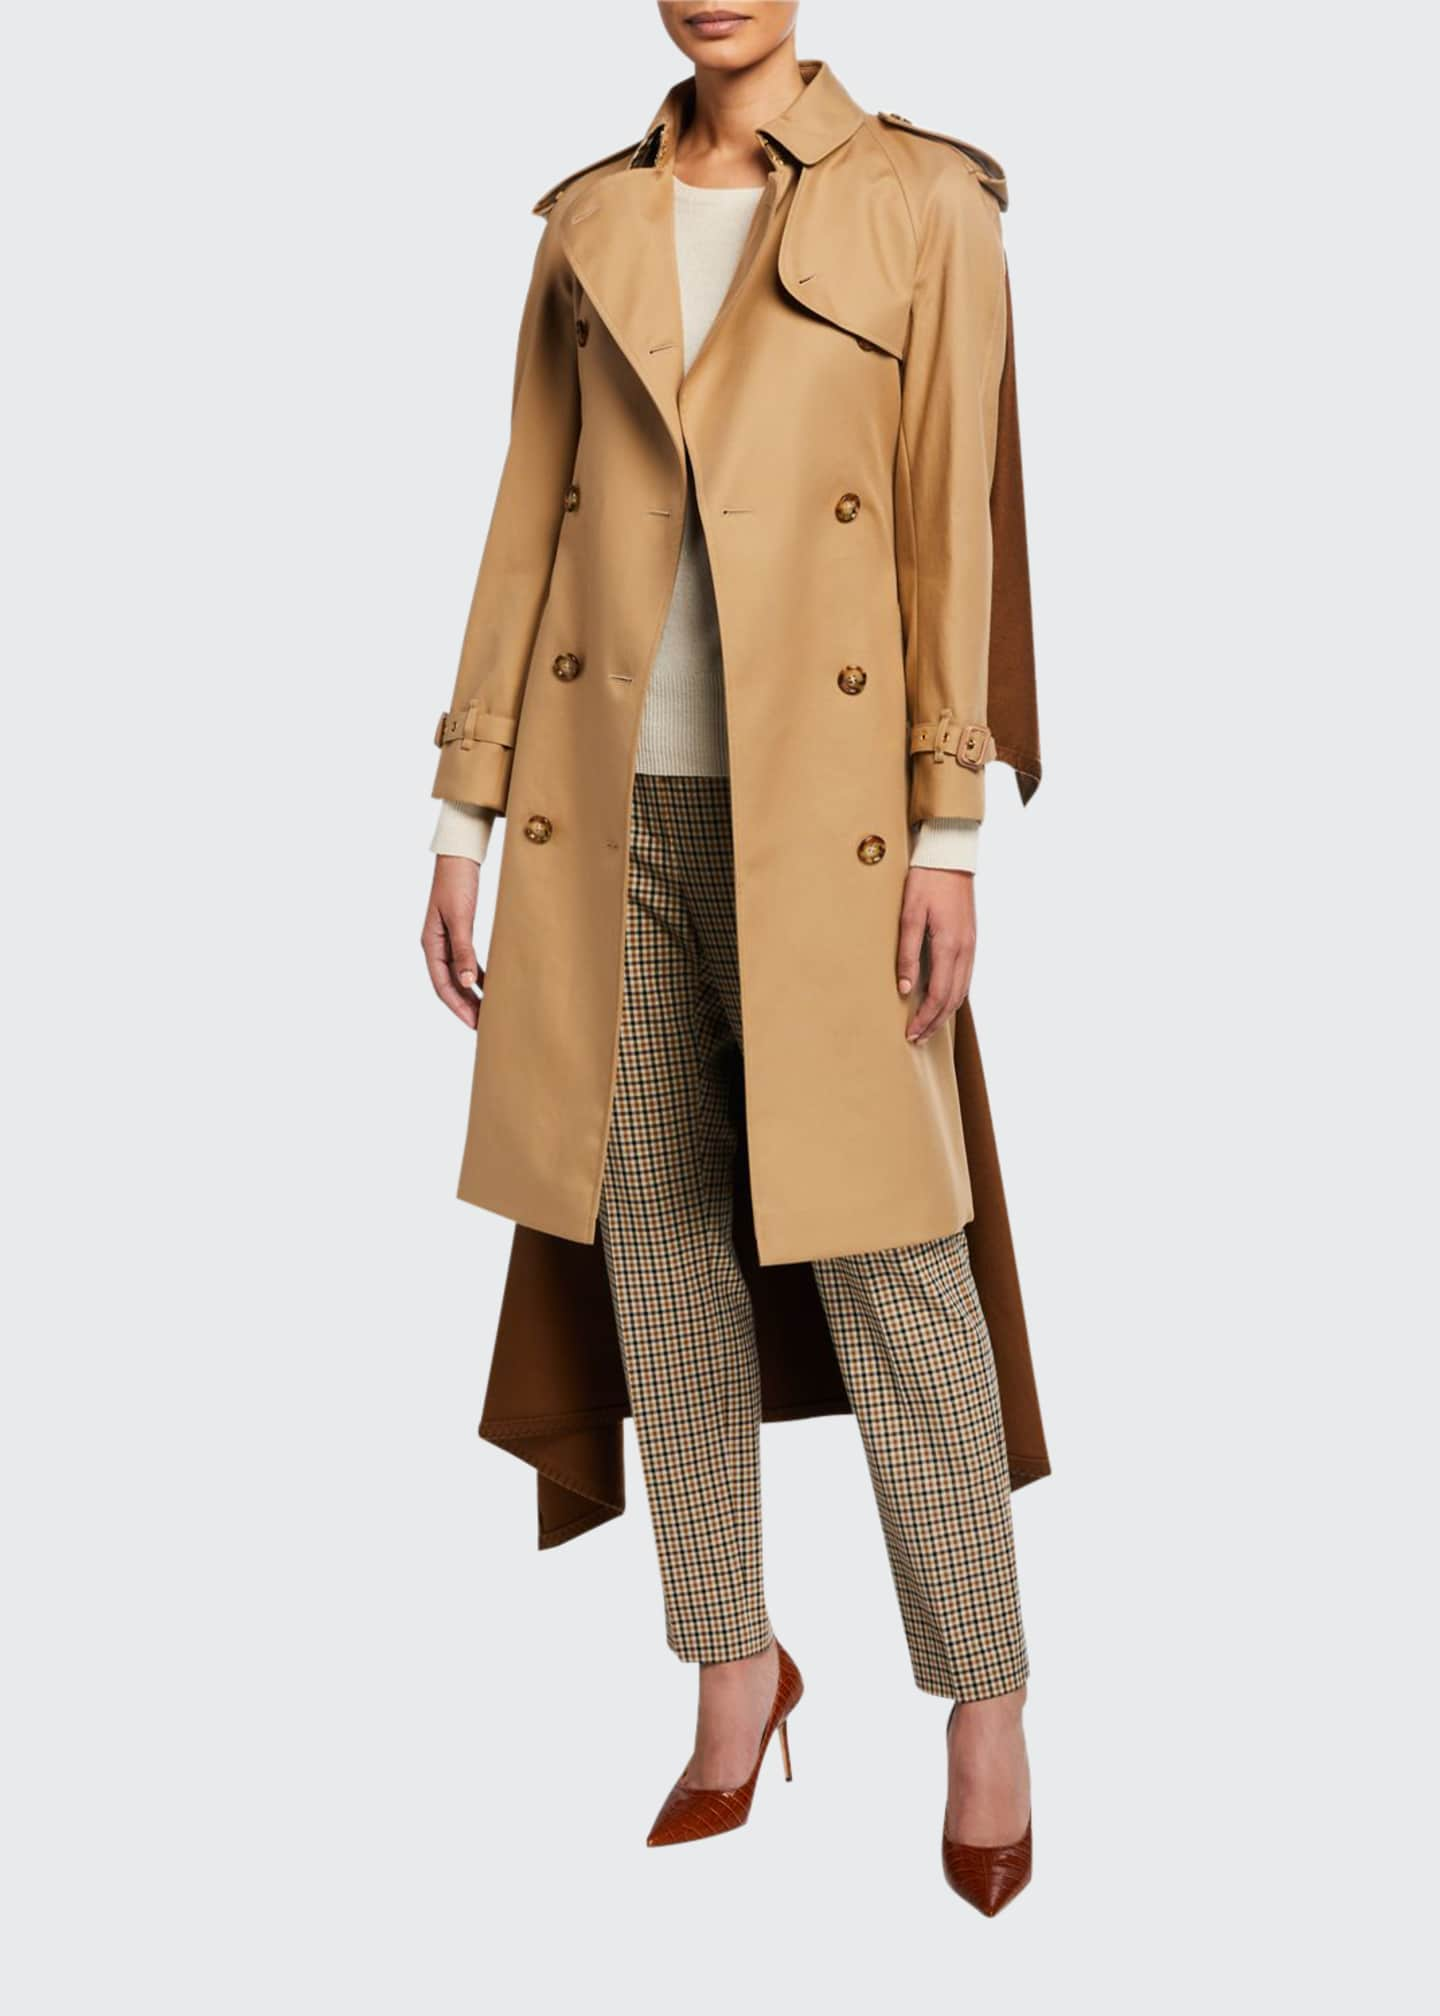 Burberry Cotton Trench Coat w/ Cape